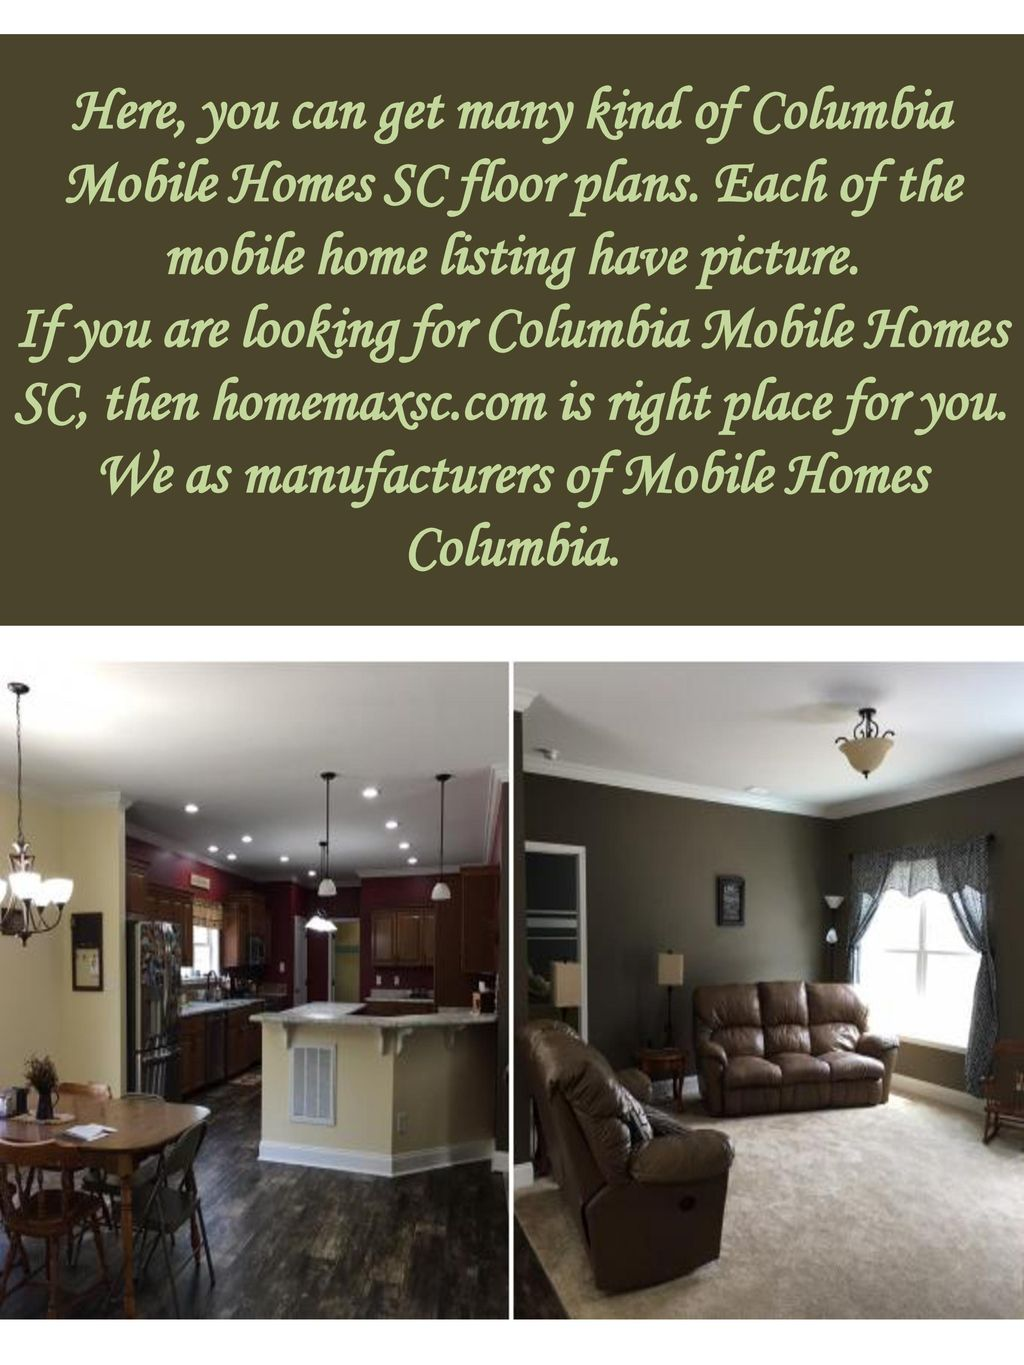 Here, you can get many kind of Columbia Mobile Homes SC floor plans